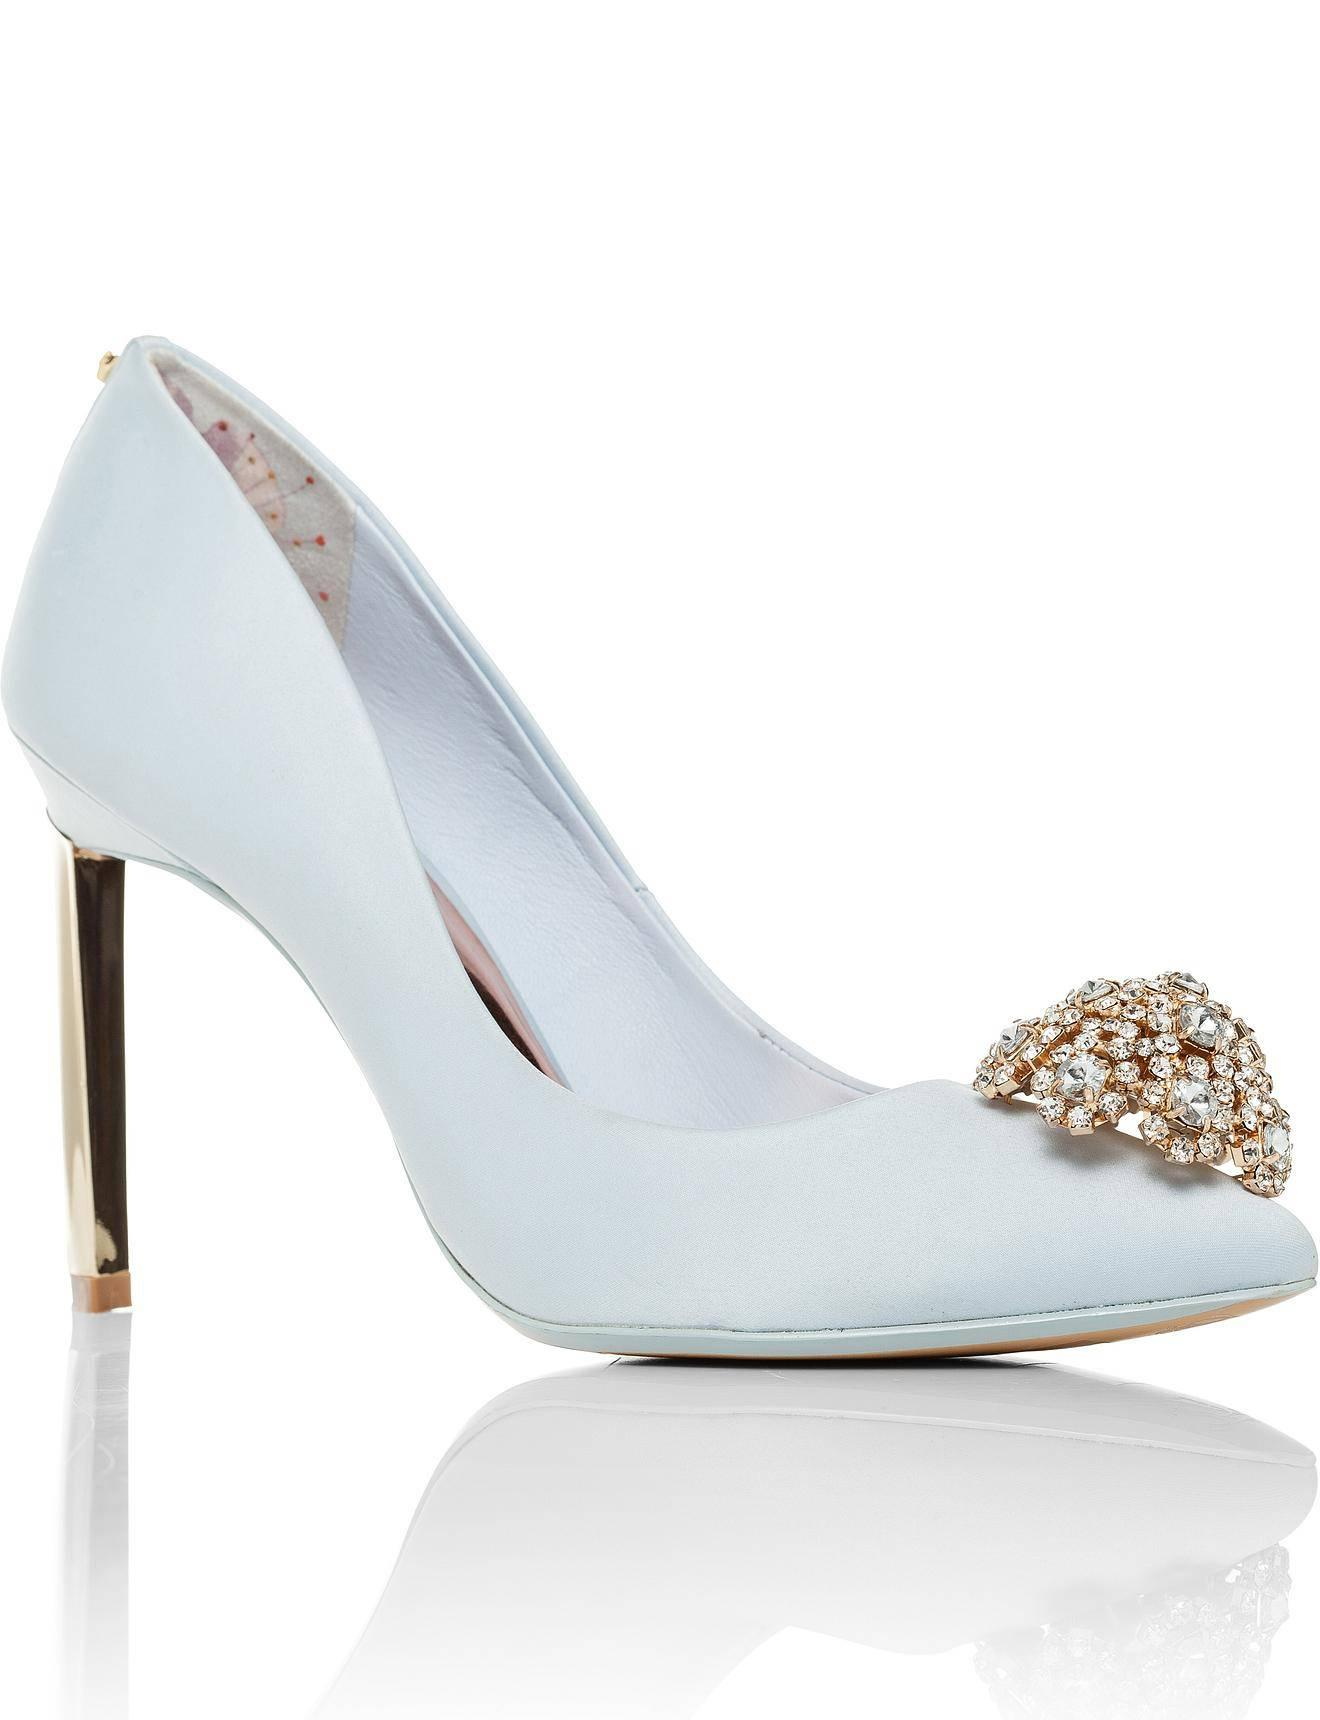 f1851b61d70ca Ted Baker Peetch Pump W Crystal Rosette in Blue - Lyst